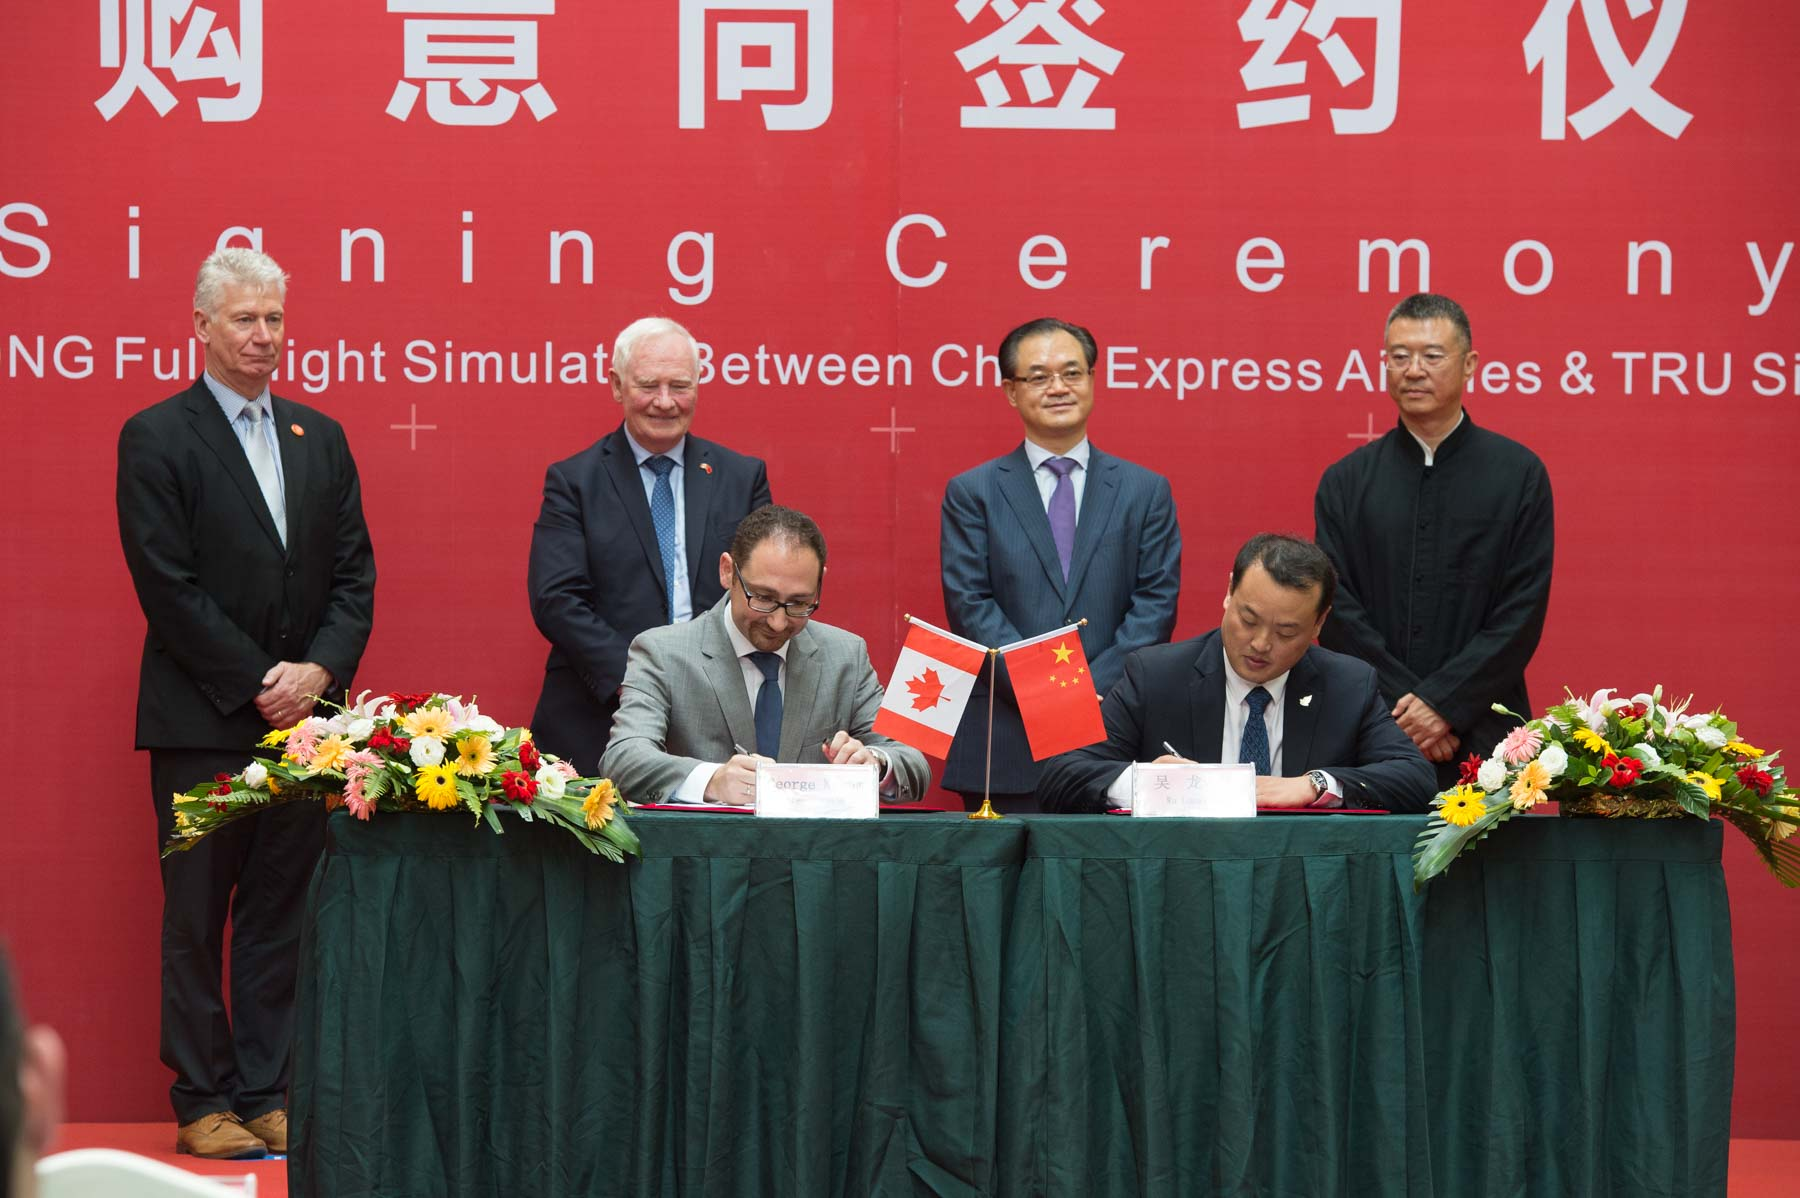 Within the same facility, the Governor General and Mr. Stewart Beck, President and Chief Executive Officer of the Asia Pacific Foundation of Canada, witnessed the signing of a commercial agreement between TRU Simulation + Training Inc. and China Express Airlines.